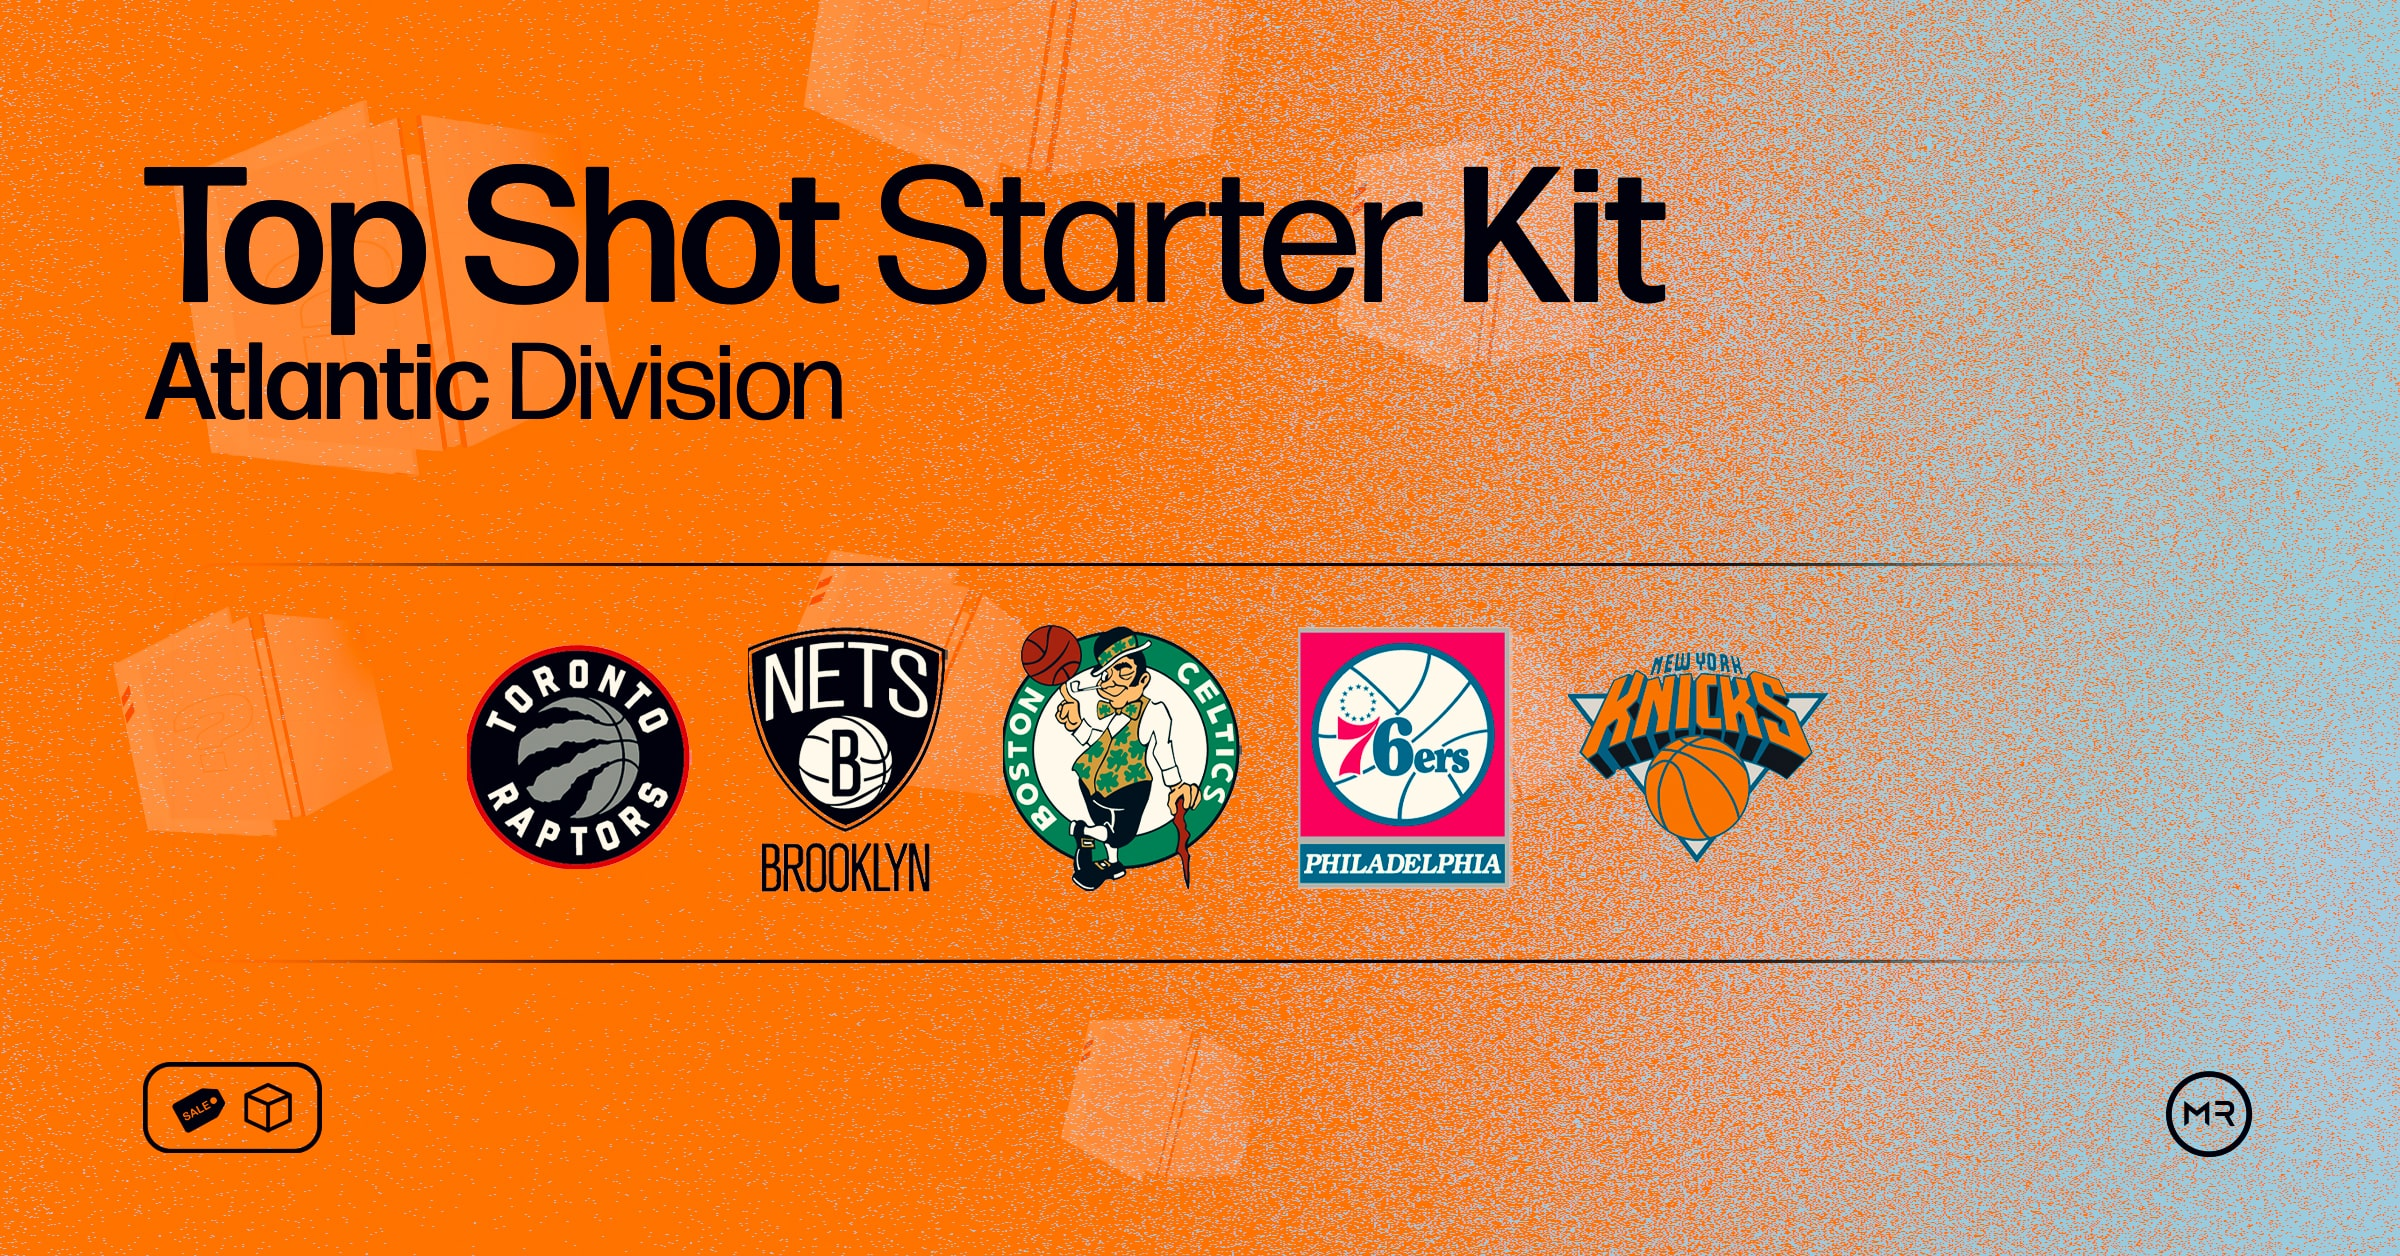 A beginner's guide to start your Top Shot collection with your favorite NBA team. Our hand-picked Moments from the 76ers, Nets, Knicks, Celtics, and Raptors.